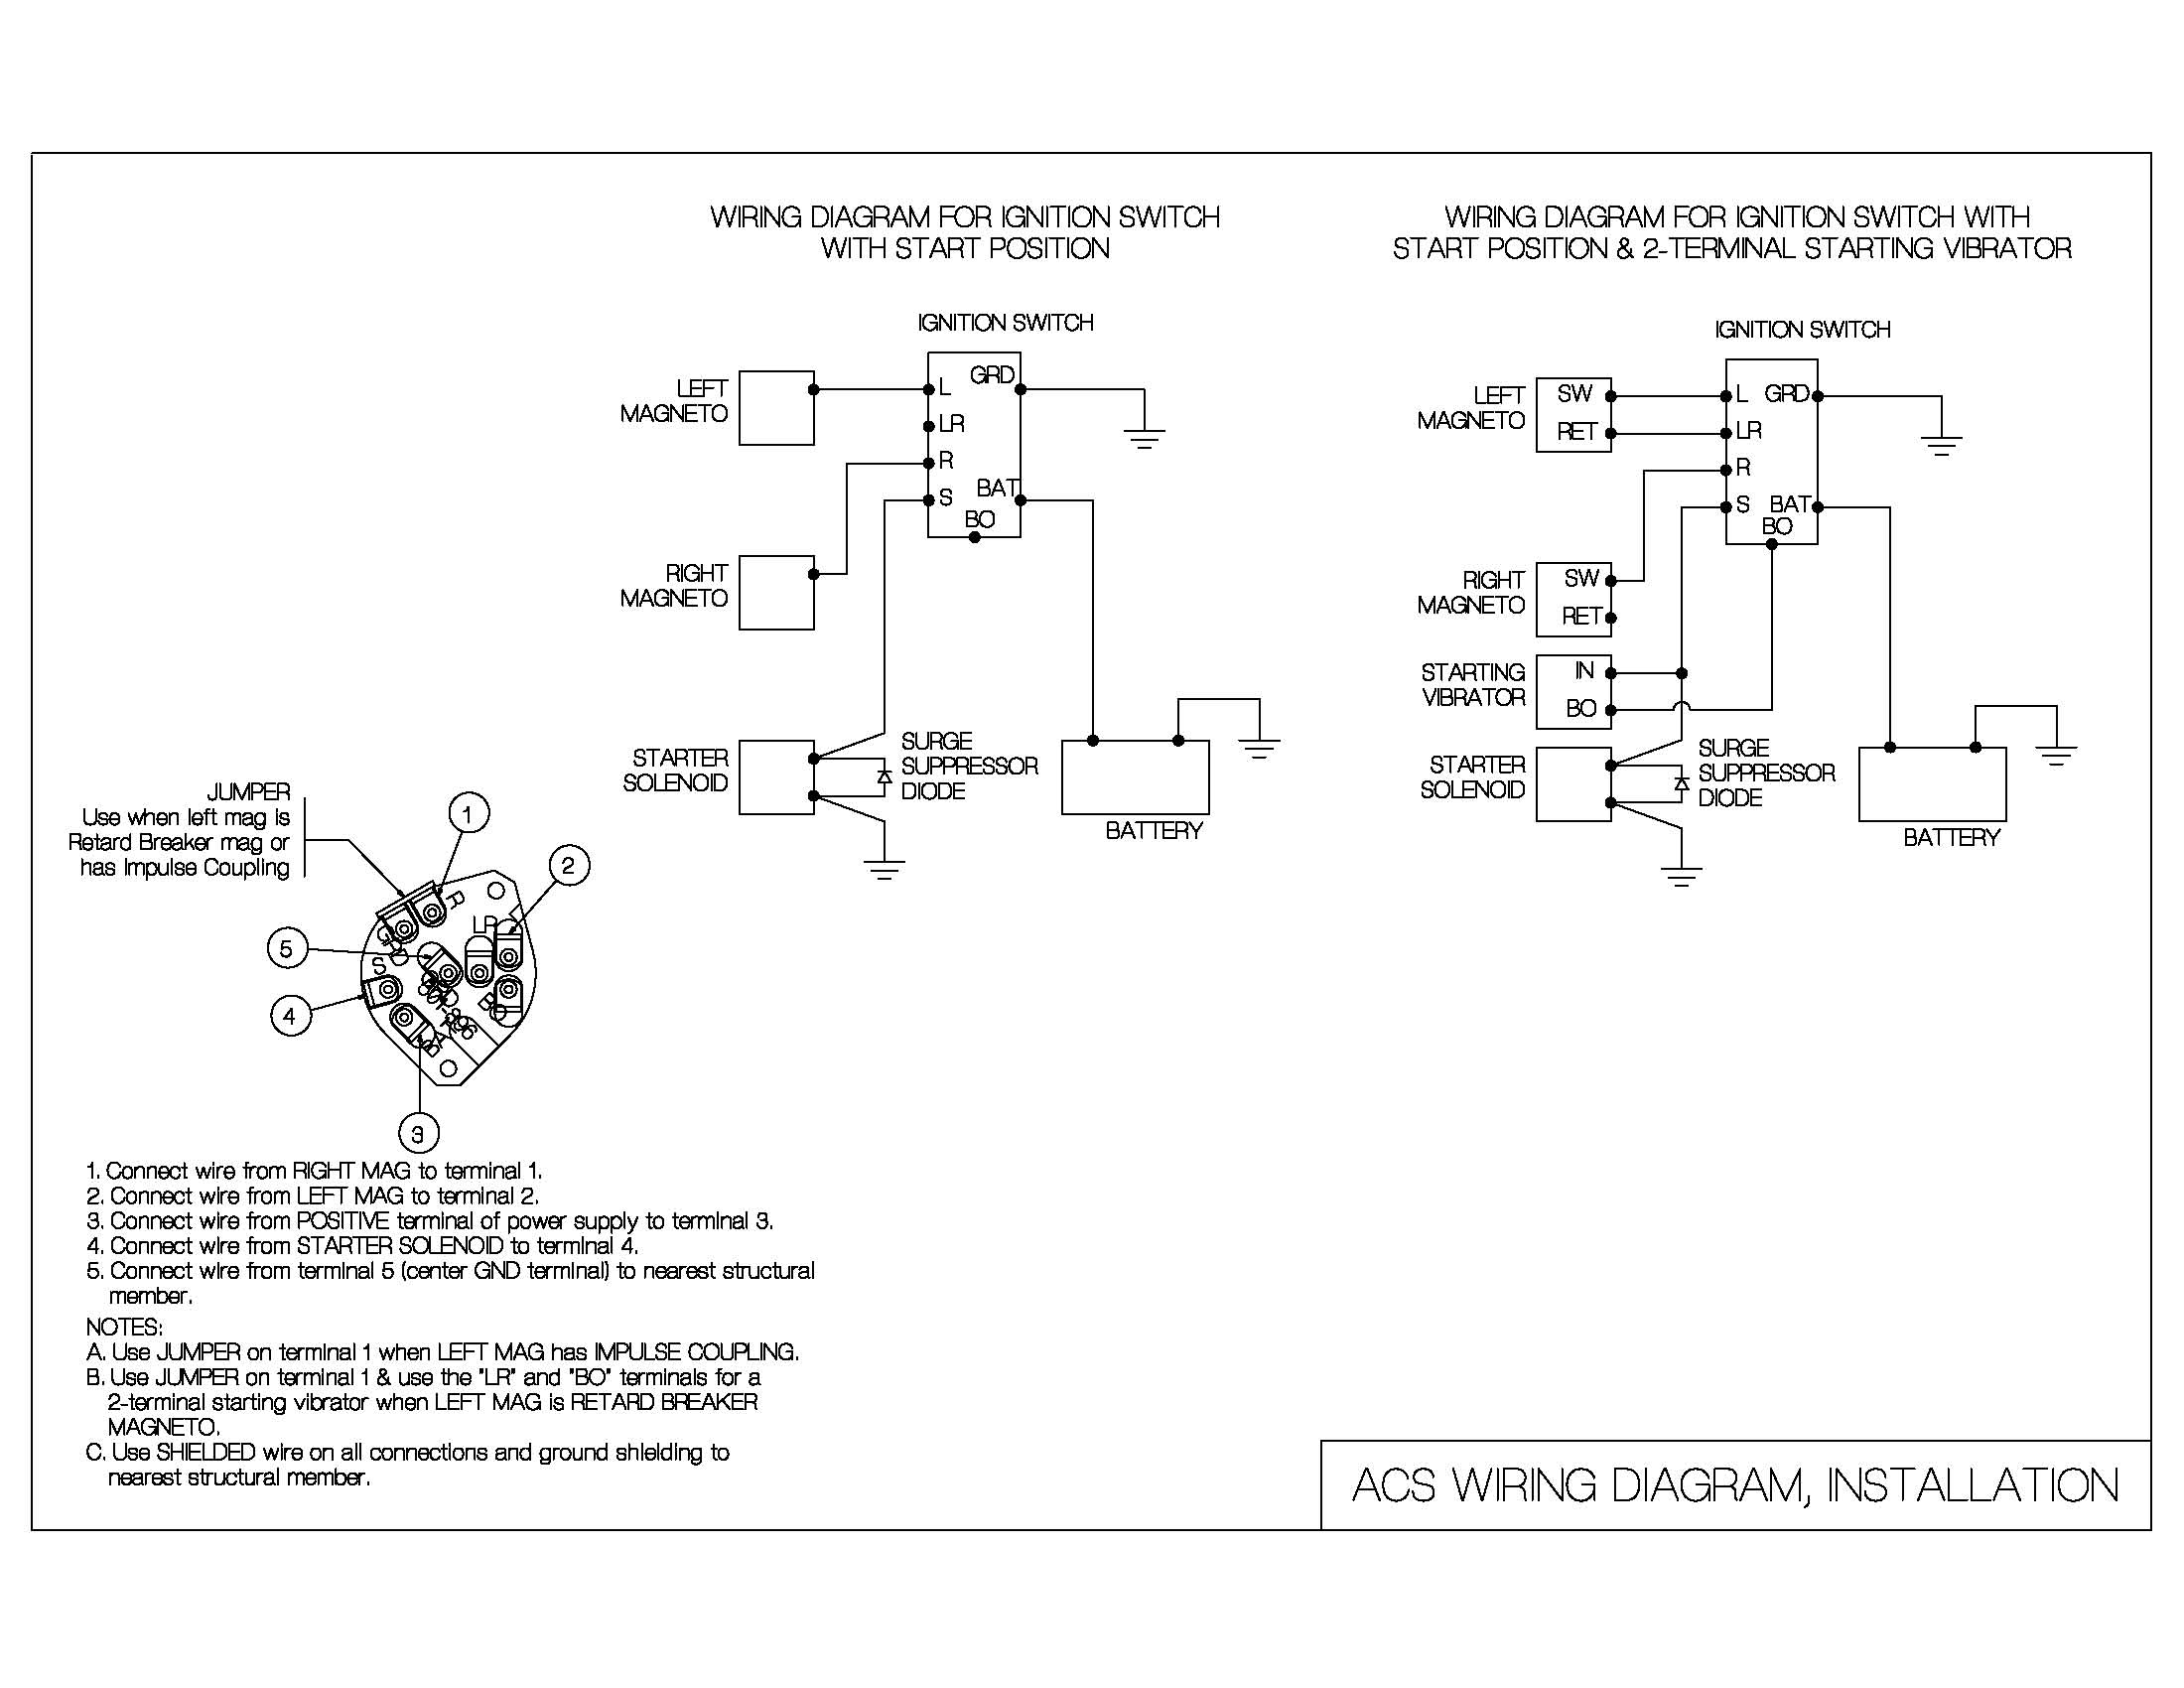 Wiring Diagram ignition switch wiring diagram acs products company  at bayanpartner.co